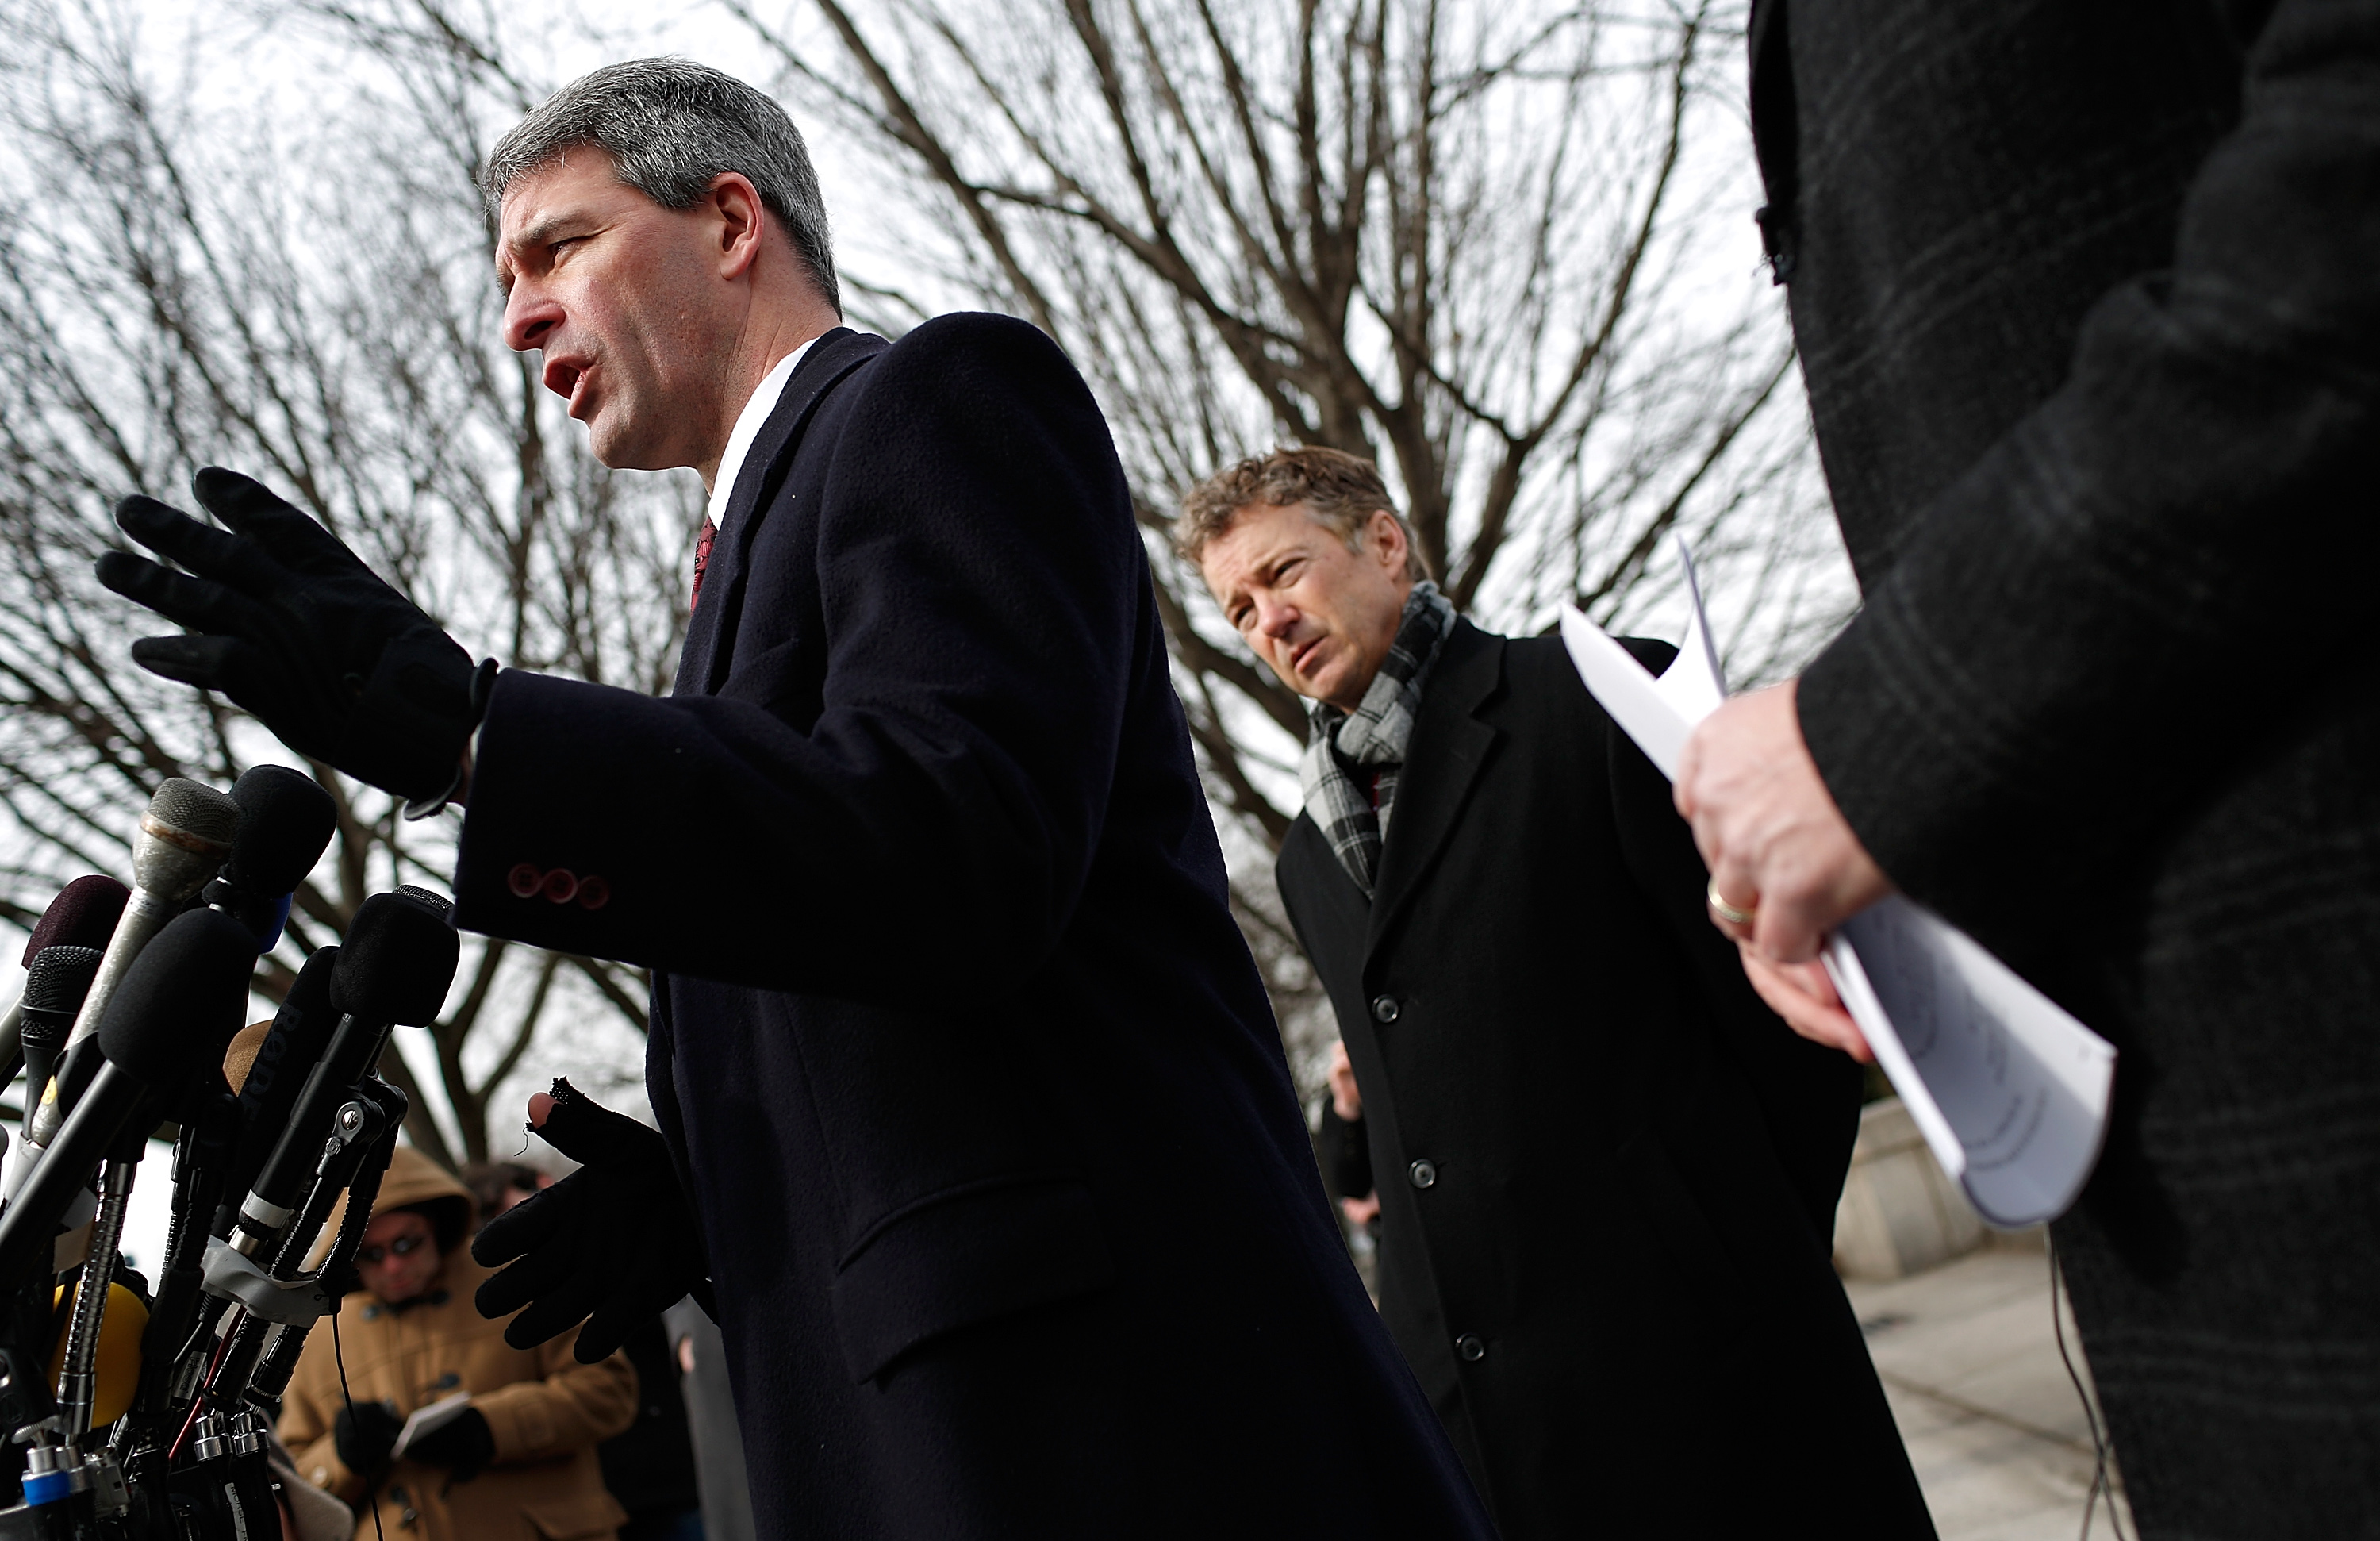 WASHINGTON, DC - FEBRUARY 12: Former Virginia Attorney General Ken Cuccinelli (L) and U.S. Sen. Rand Paul (R-KY) speak at a press conference in front of U.S. District Court to announce the filing of a class action lawsuit against the administration of U.S. President Barack Obama, Director of National Intelligence James Clapper, National Security Agency Director Keith Alexander and FBI Director James Comey. Paul said he filed the lawsuit to stop NSA surveillance of U.S. phone records because Obama has Òpublicly refused to stop a clear and continuing violation of the 4th amendment.Ó (Photo by Win McNamee/Getty Images)